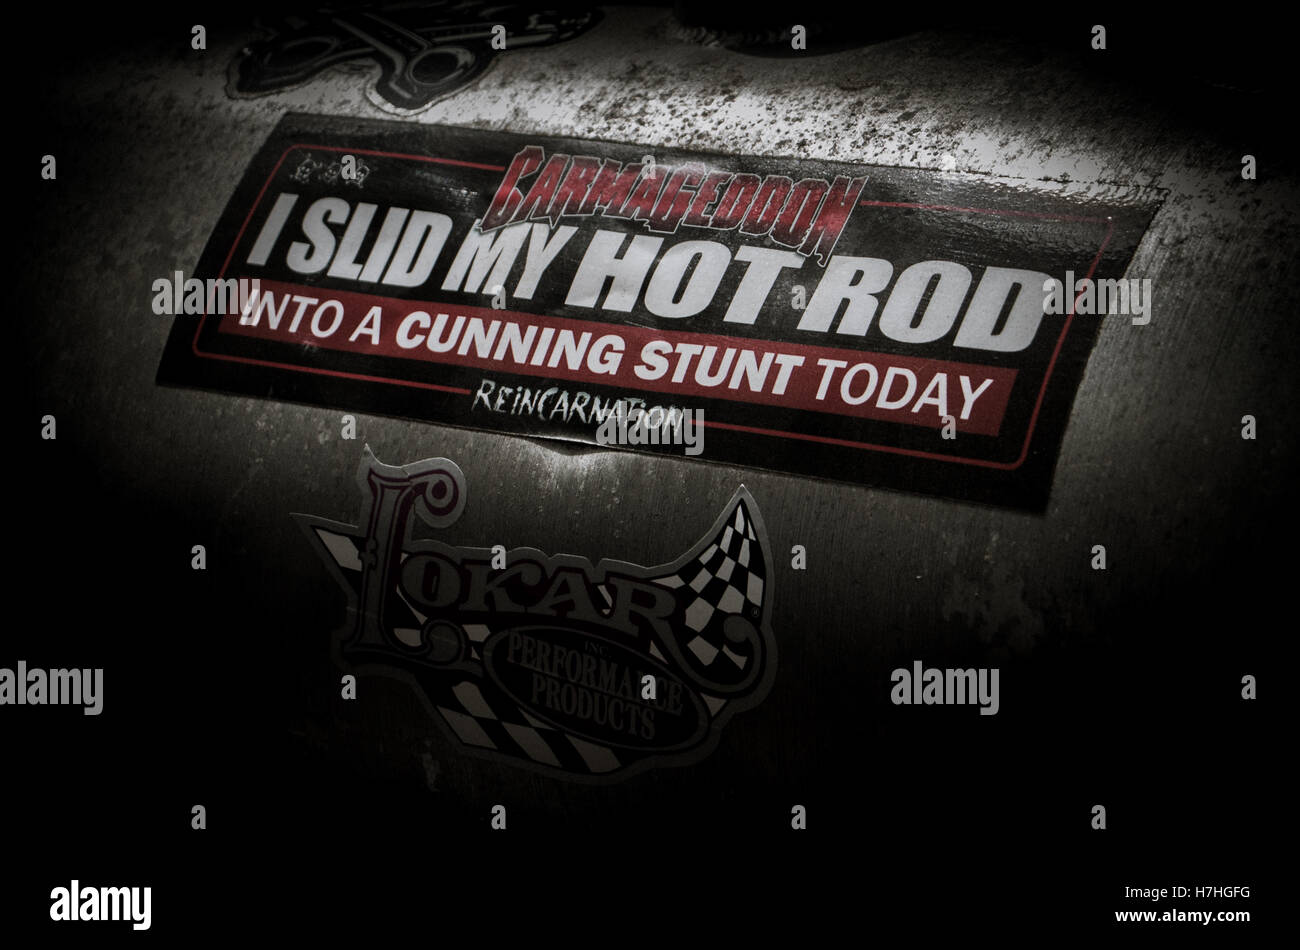 Cunning Stunts - Stock Image